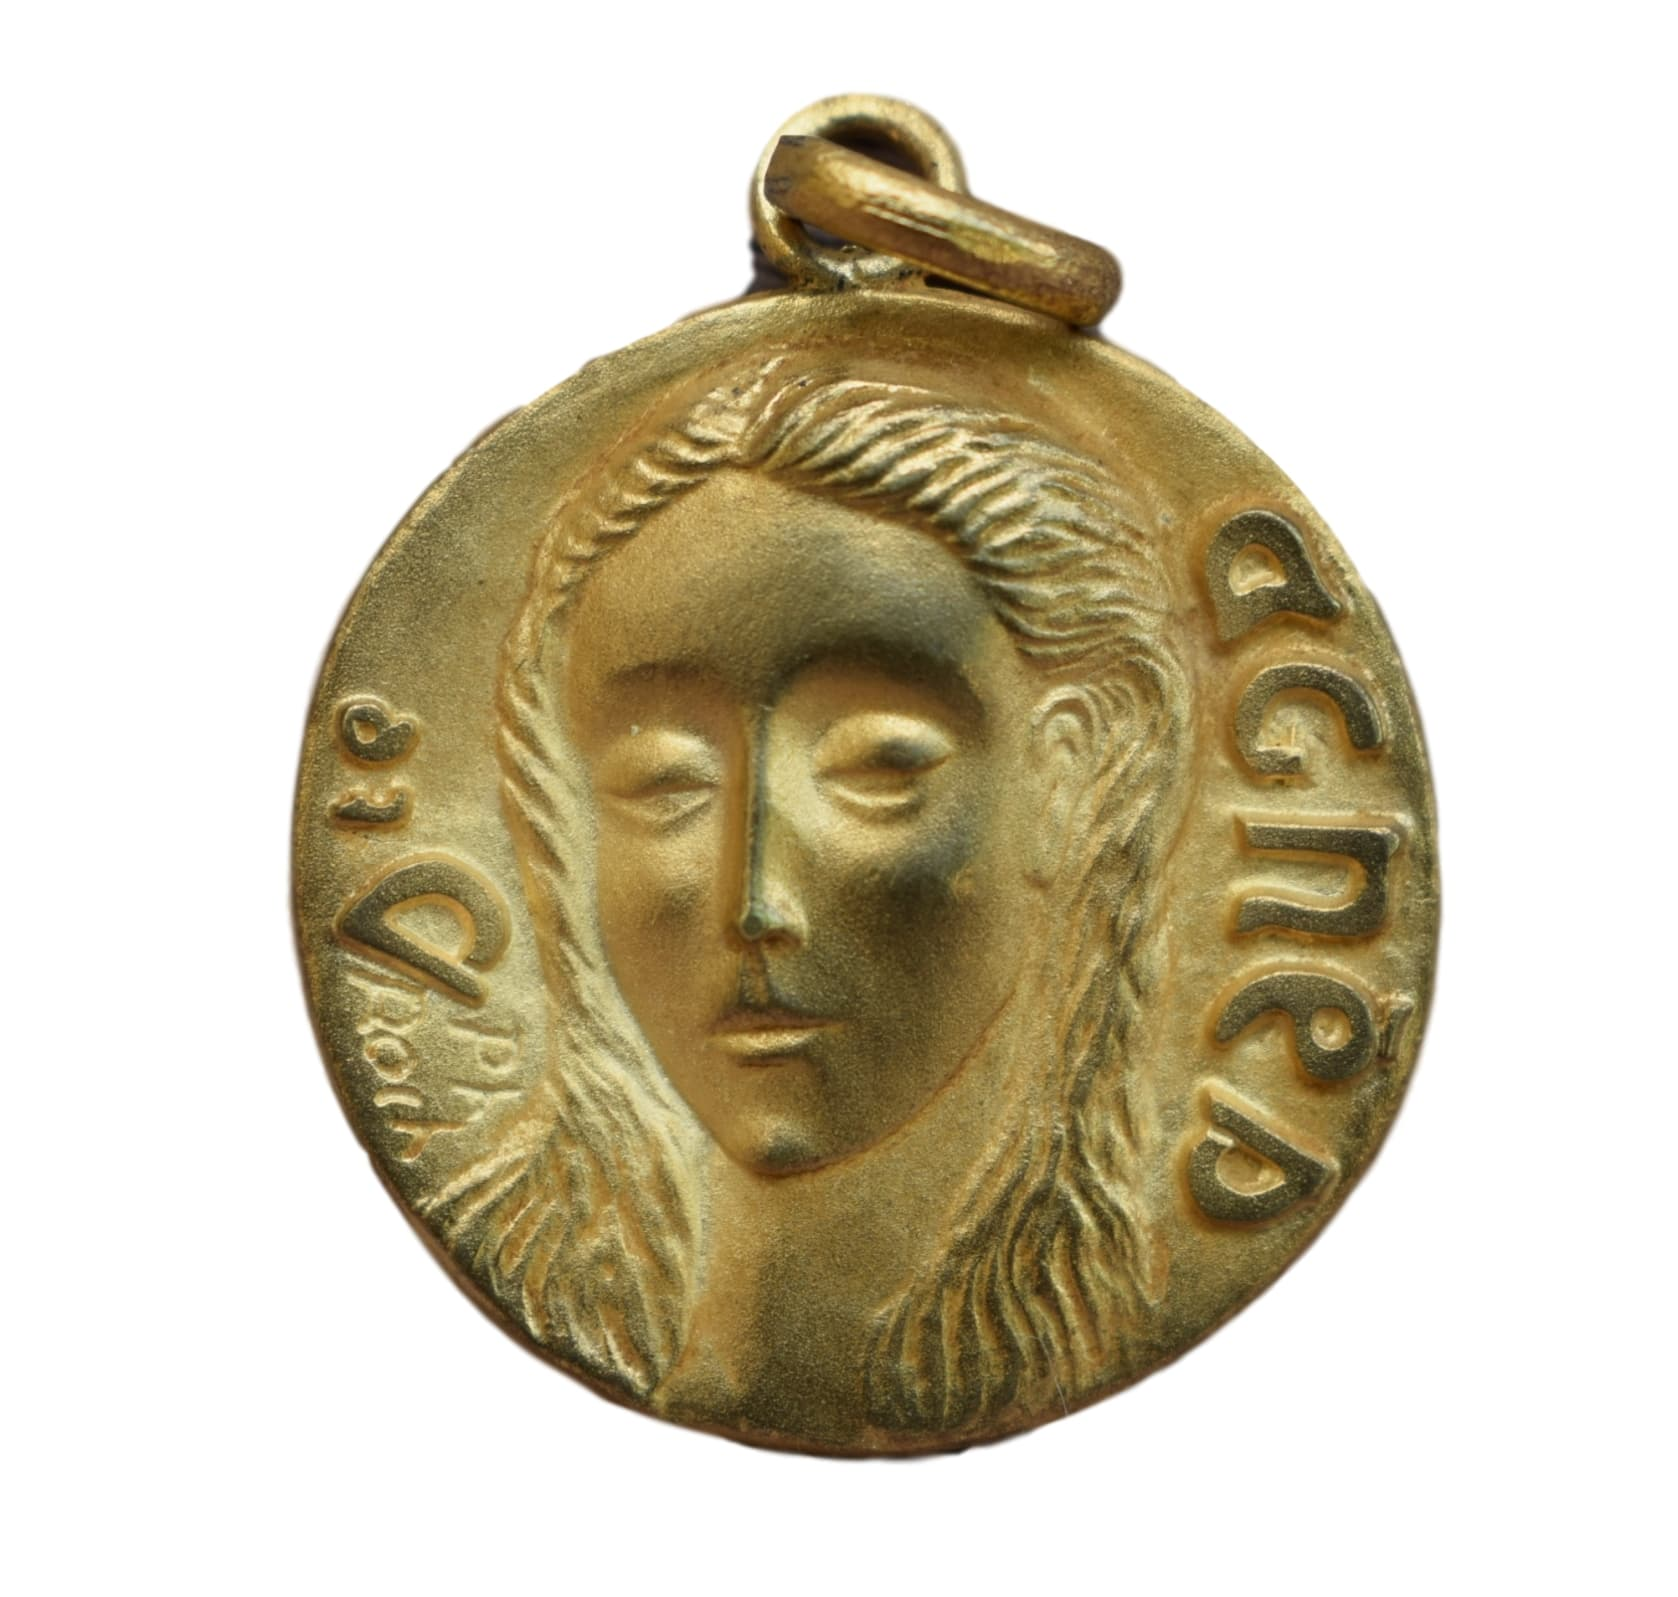 Saint Agnes Medal - French Religious Vintage Gold Medal Pendant Charm by Philippe Roch - Modernist Design - Patrons of girls